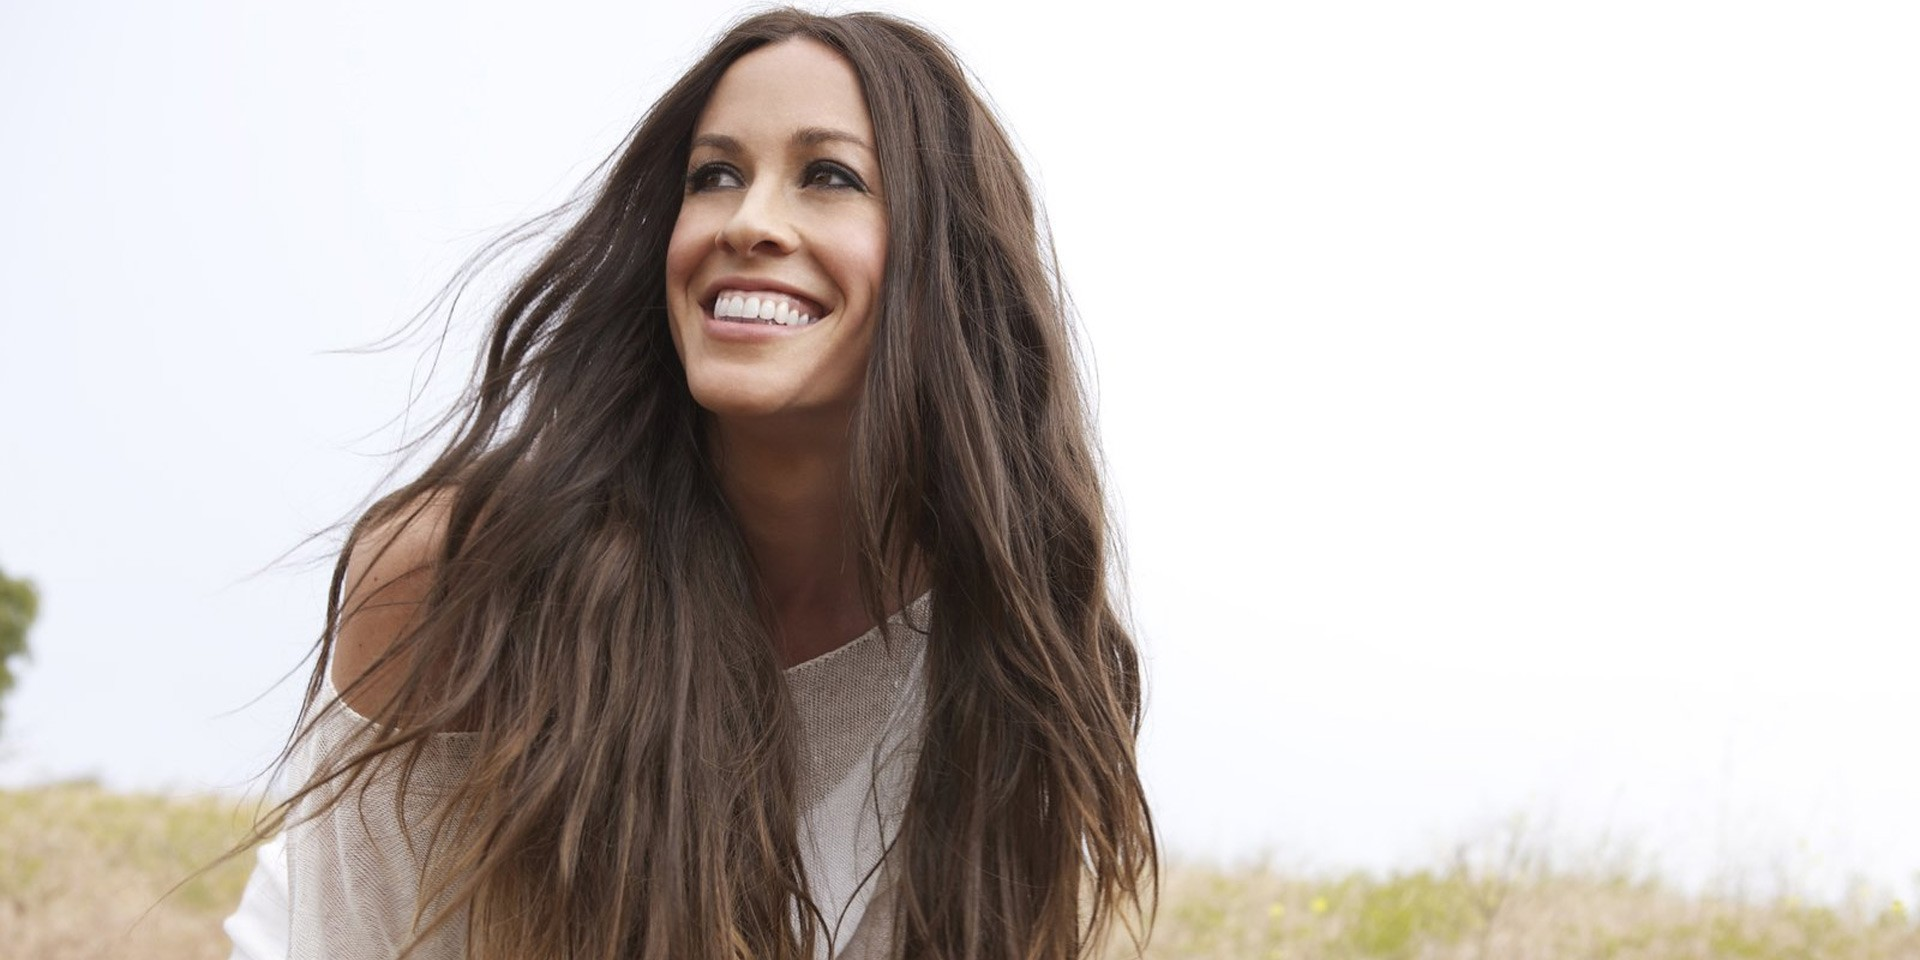 Alanis Morissette is coming to Manila this April